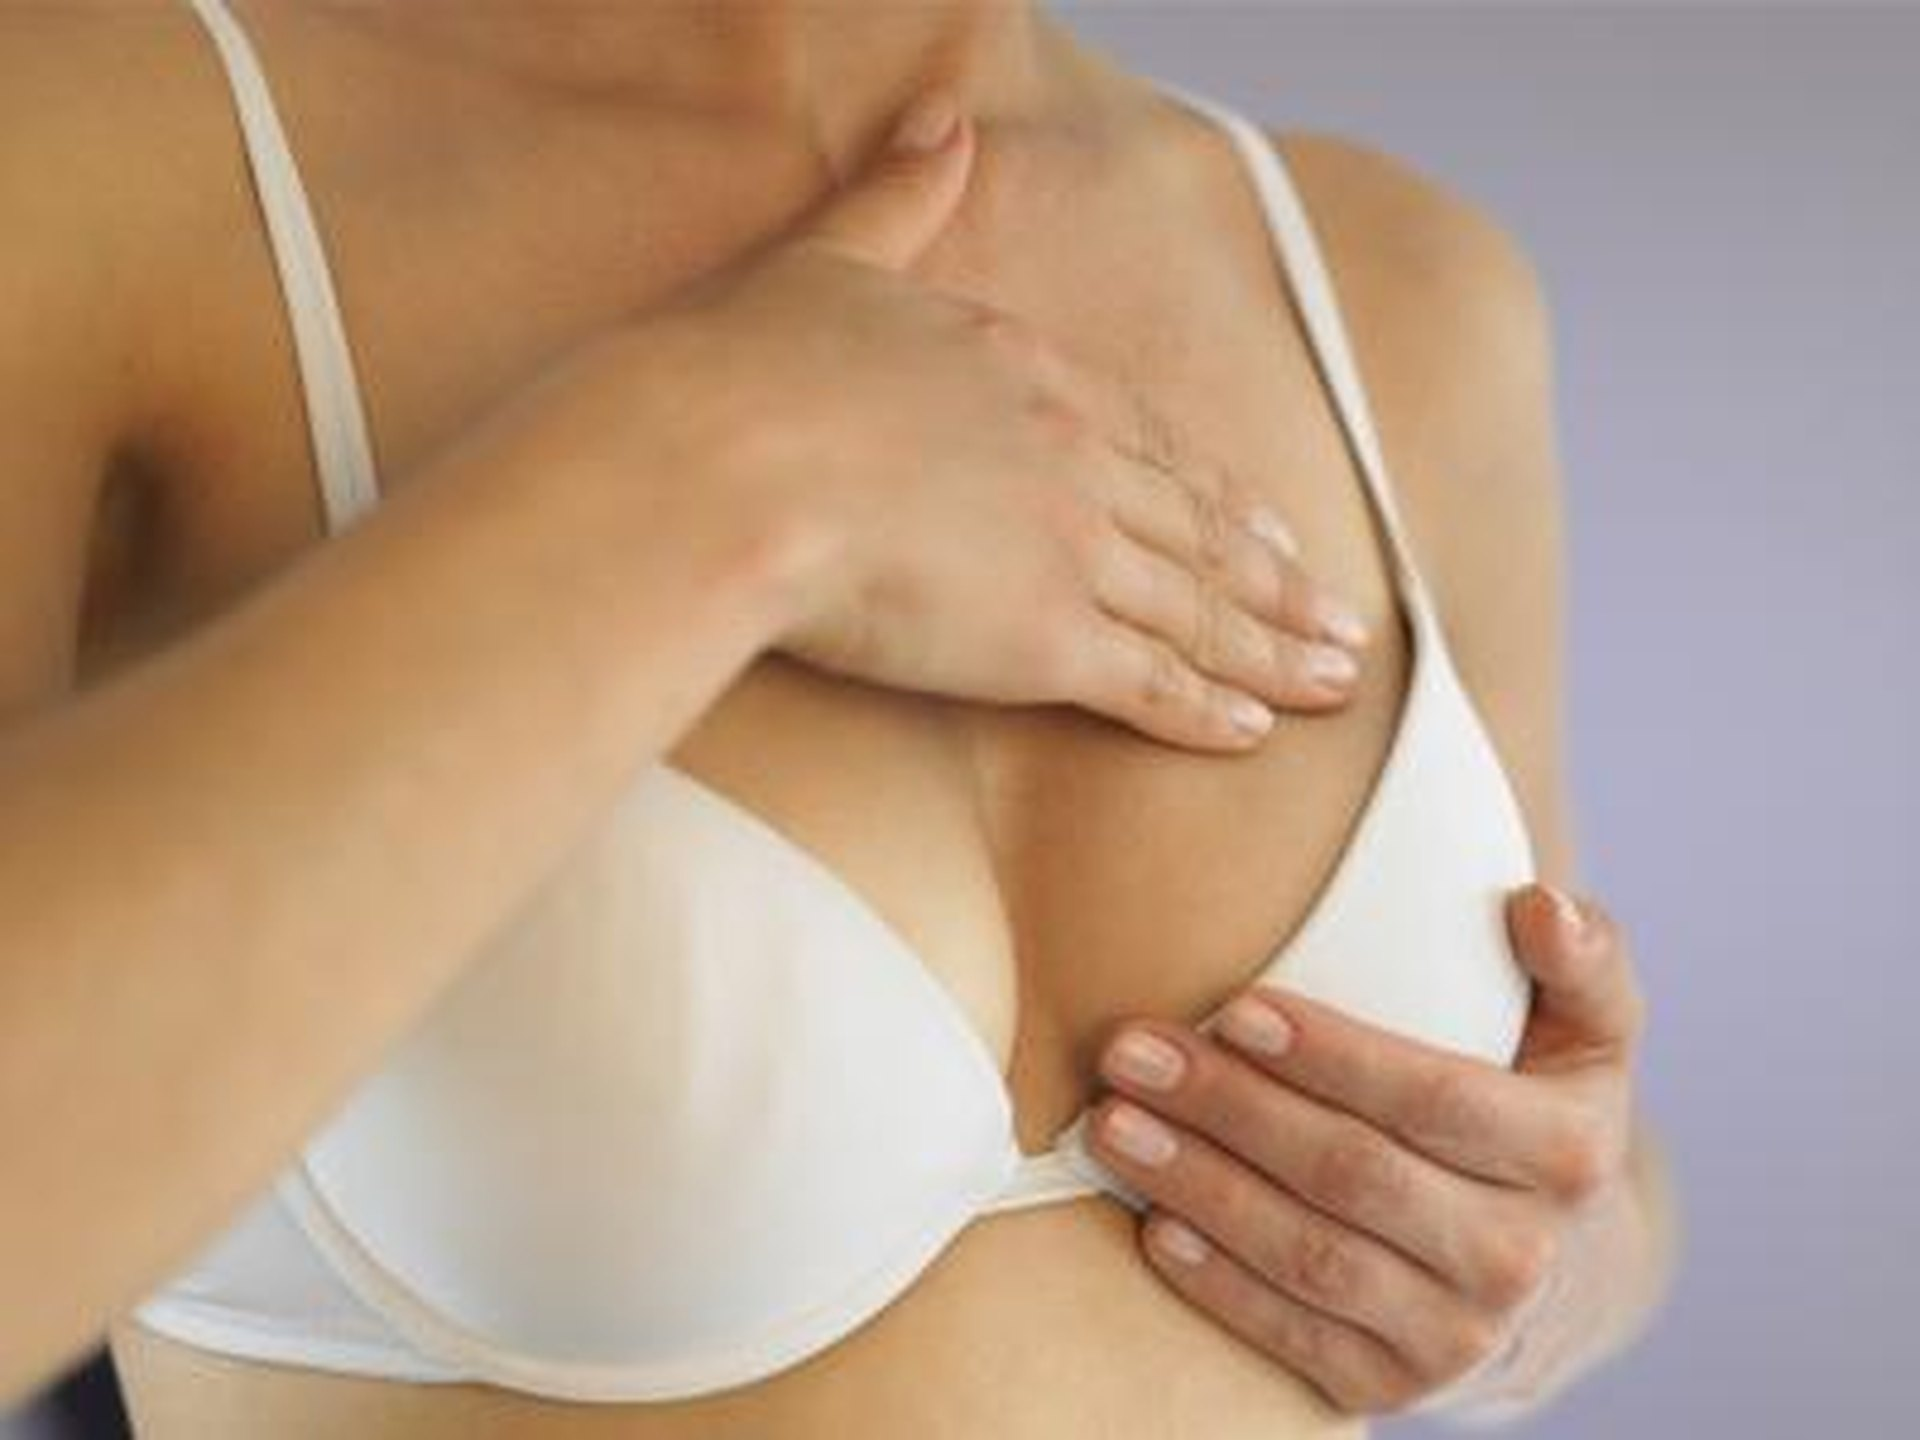 Breasts sagged after giving birth, what to do 48